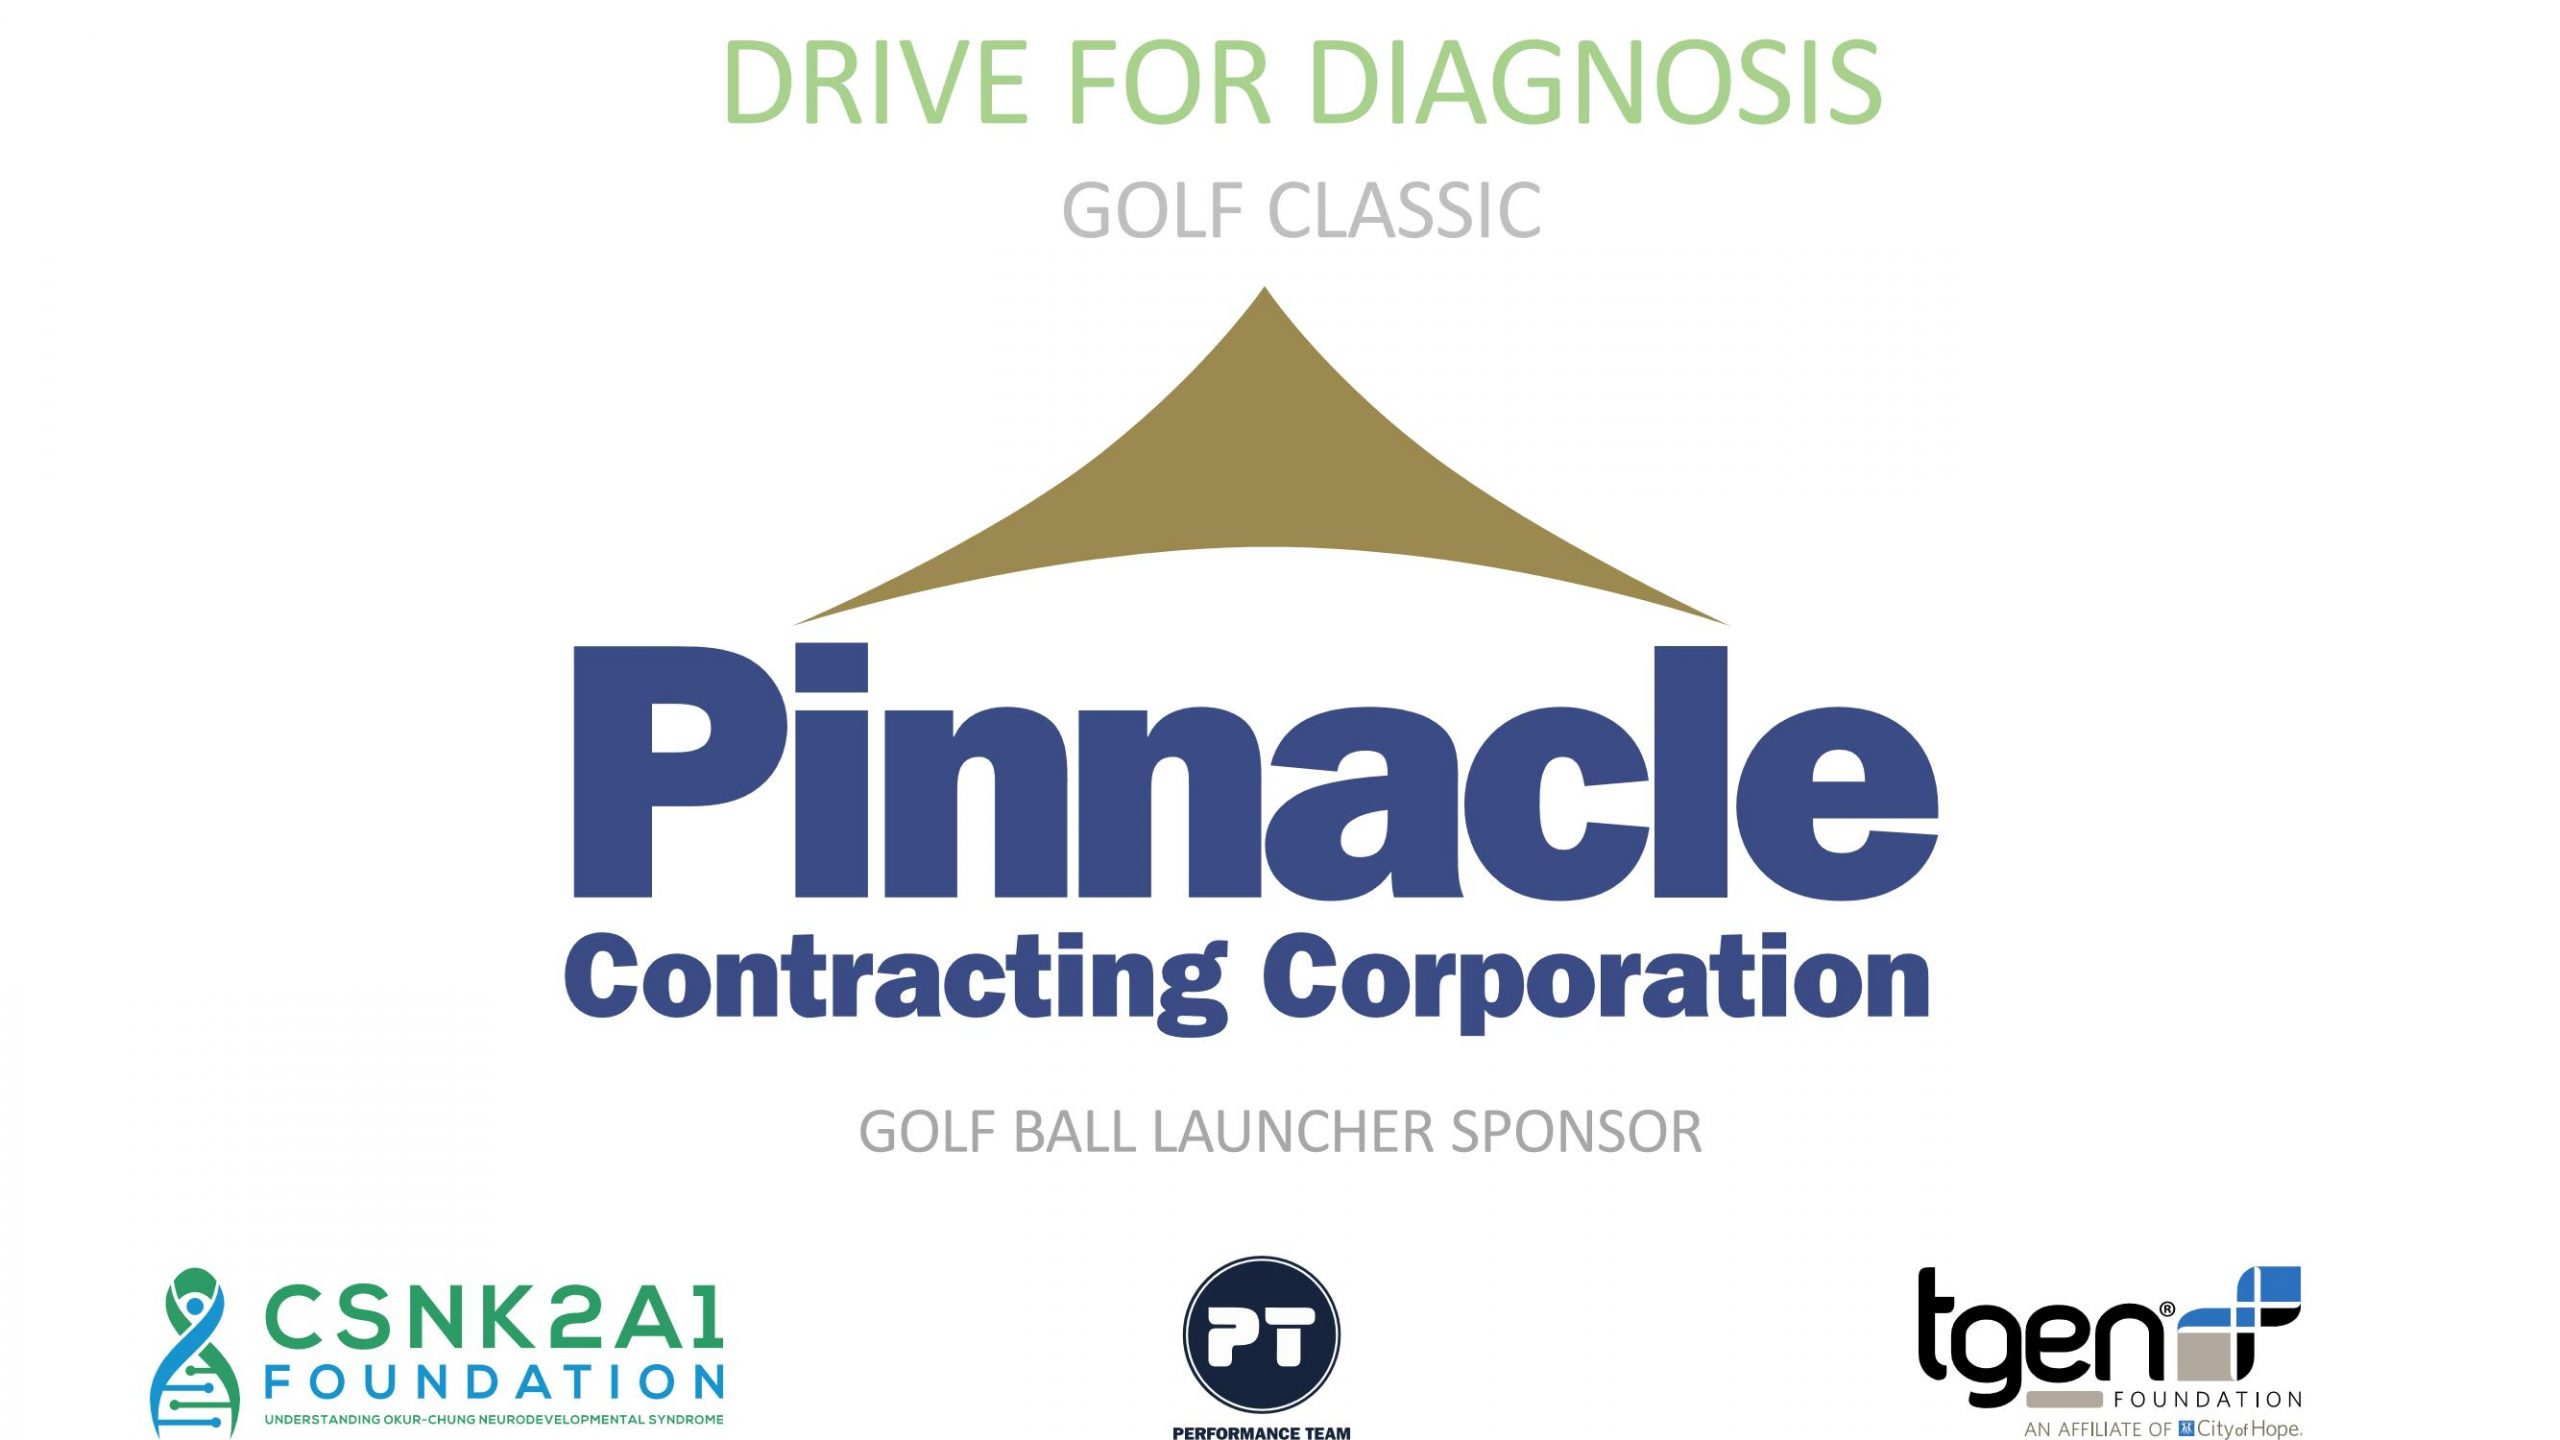 Golf Ball Launcher Sponsor - Pinnacle Contracting Corporation